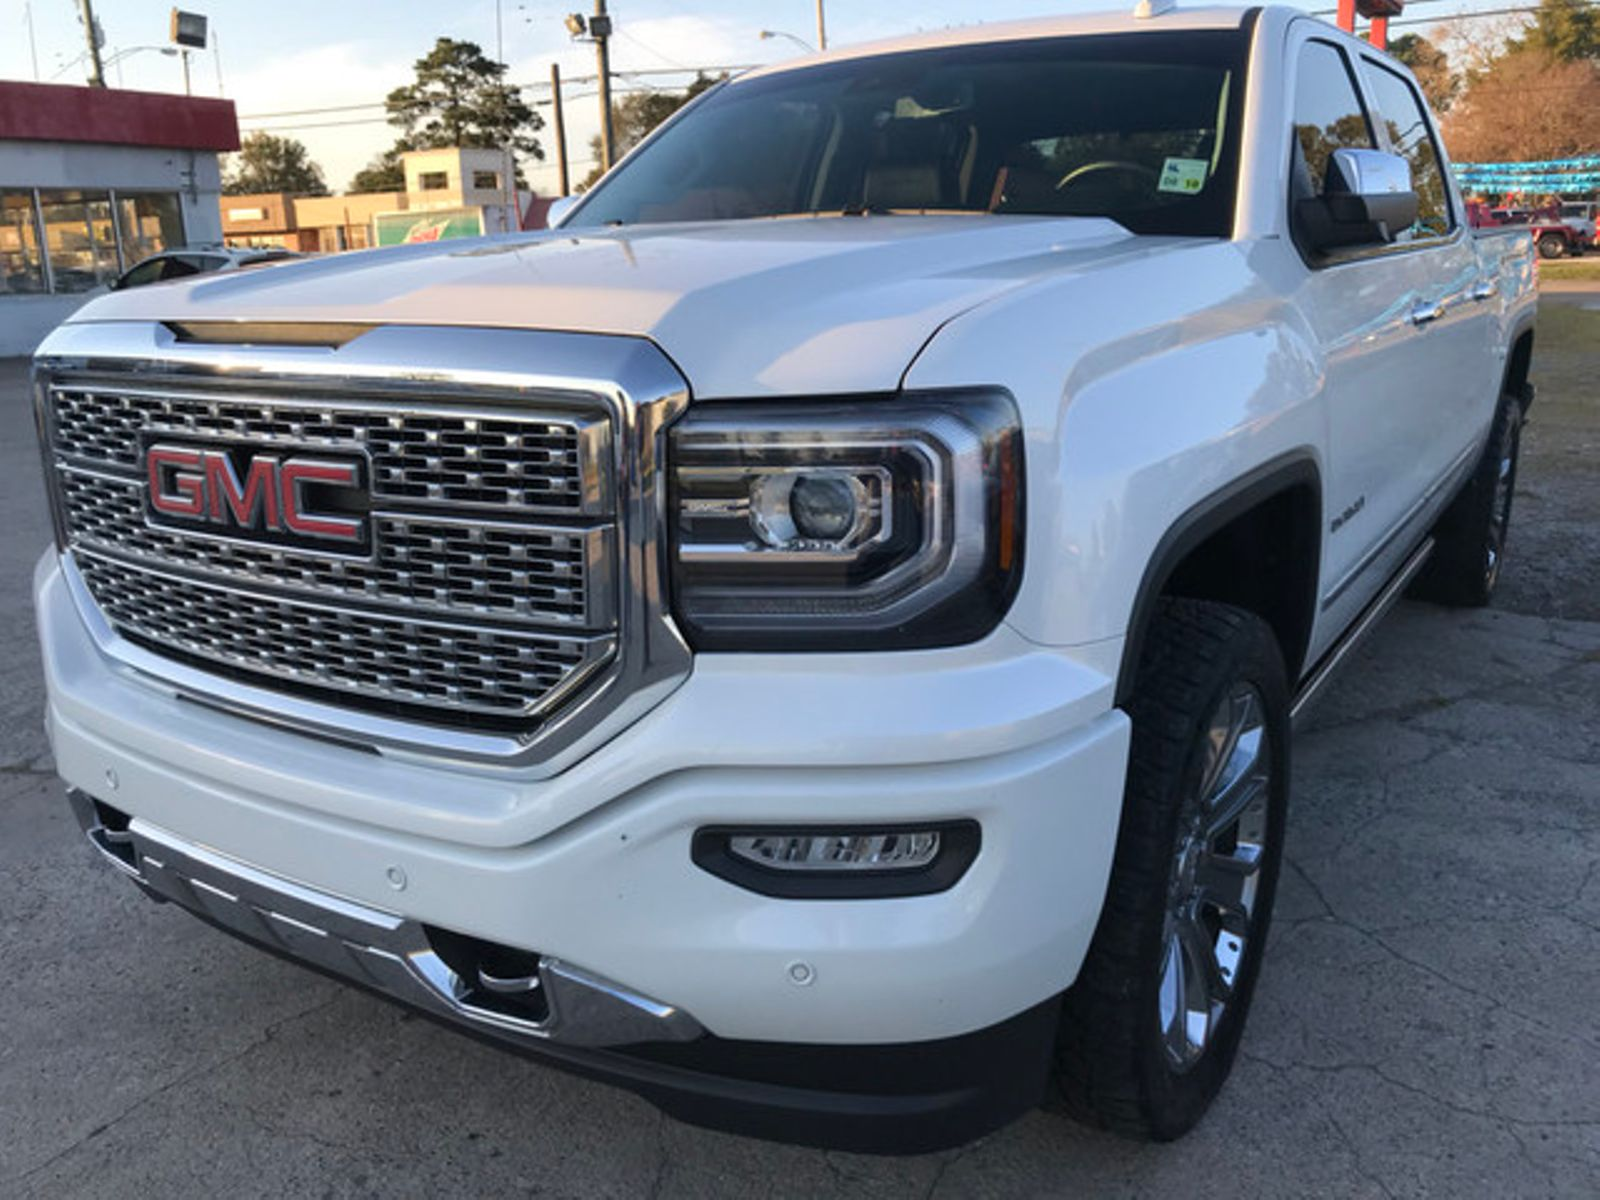 denali don business auto gmc t gmcs s dont sierra overlook pickup